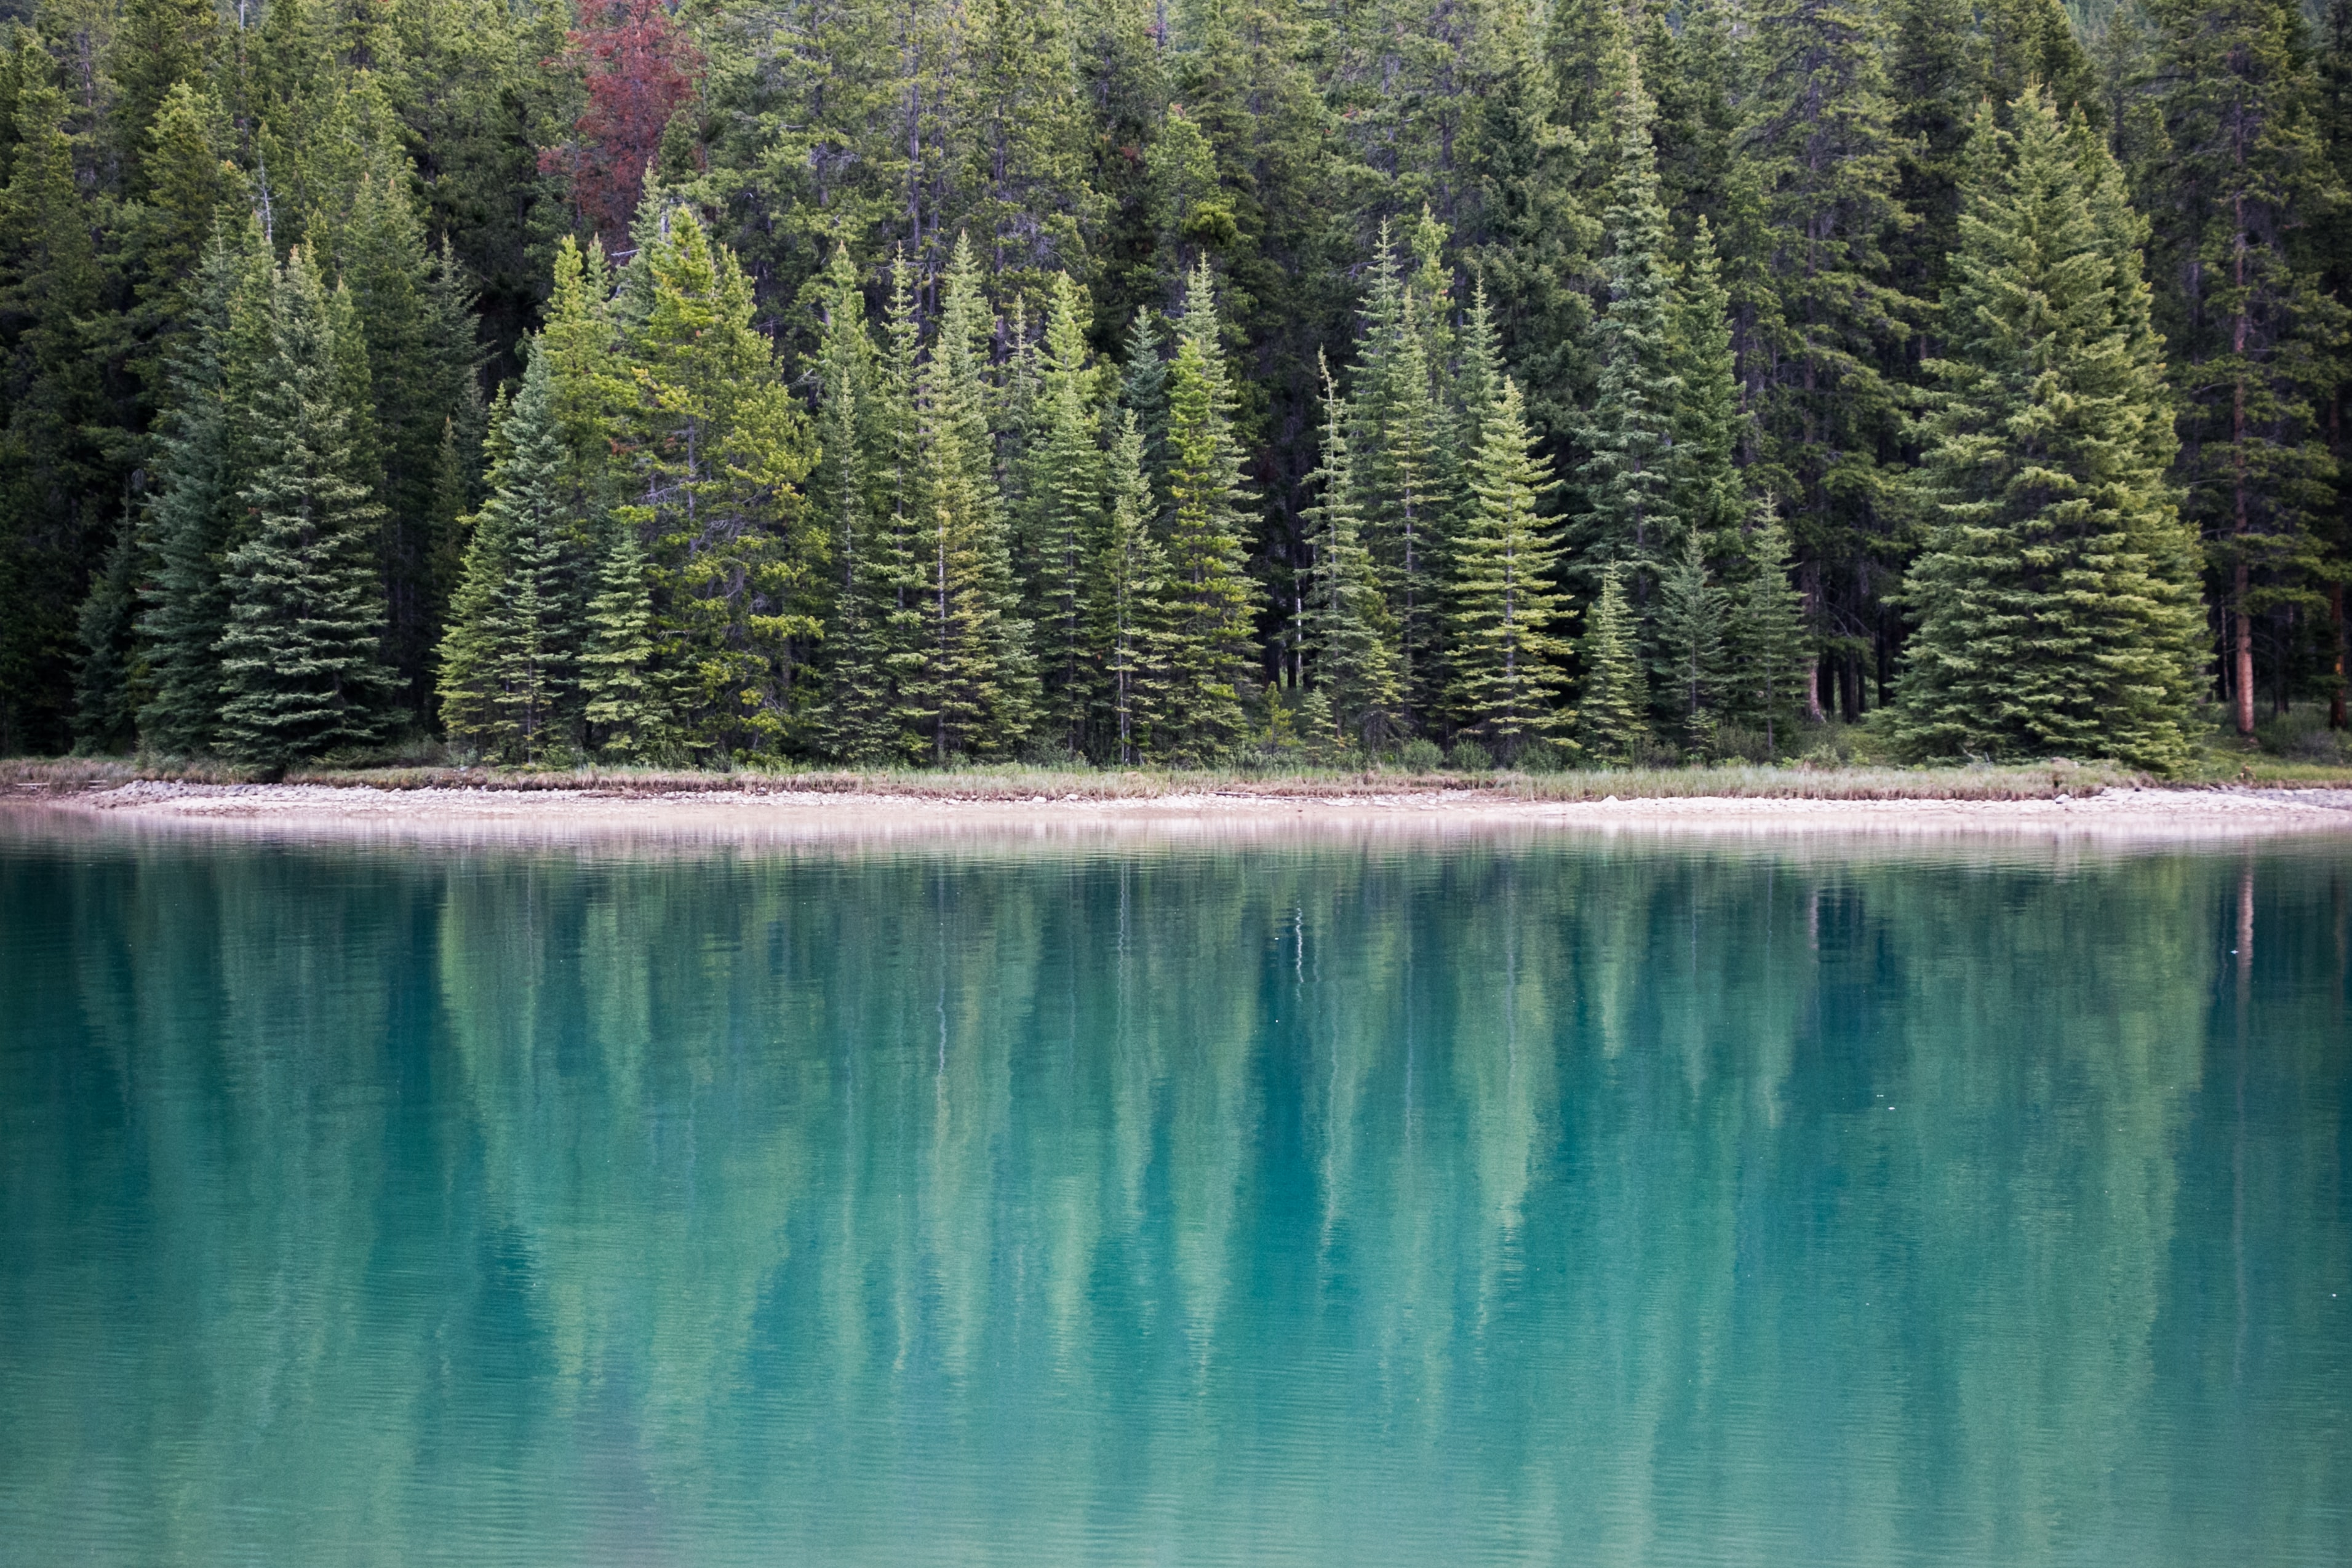 landscape photography of lake near pine trees